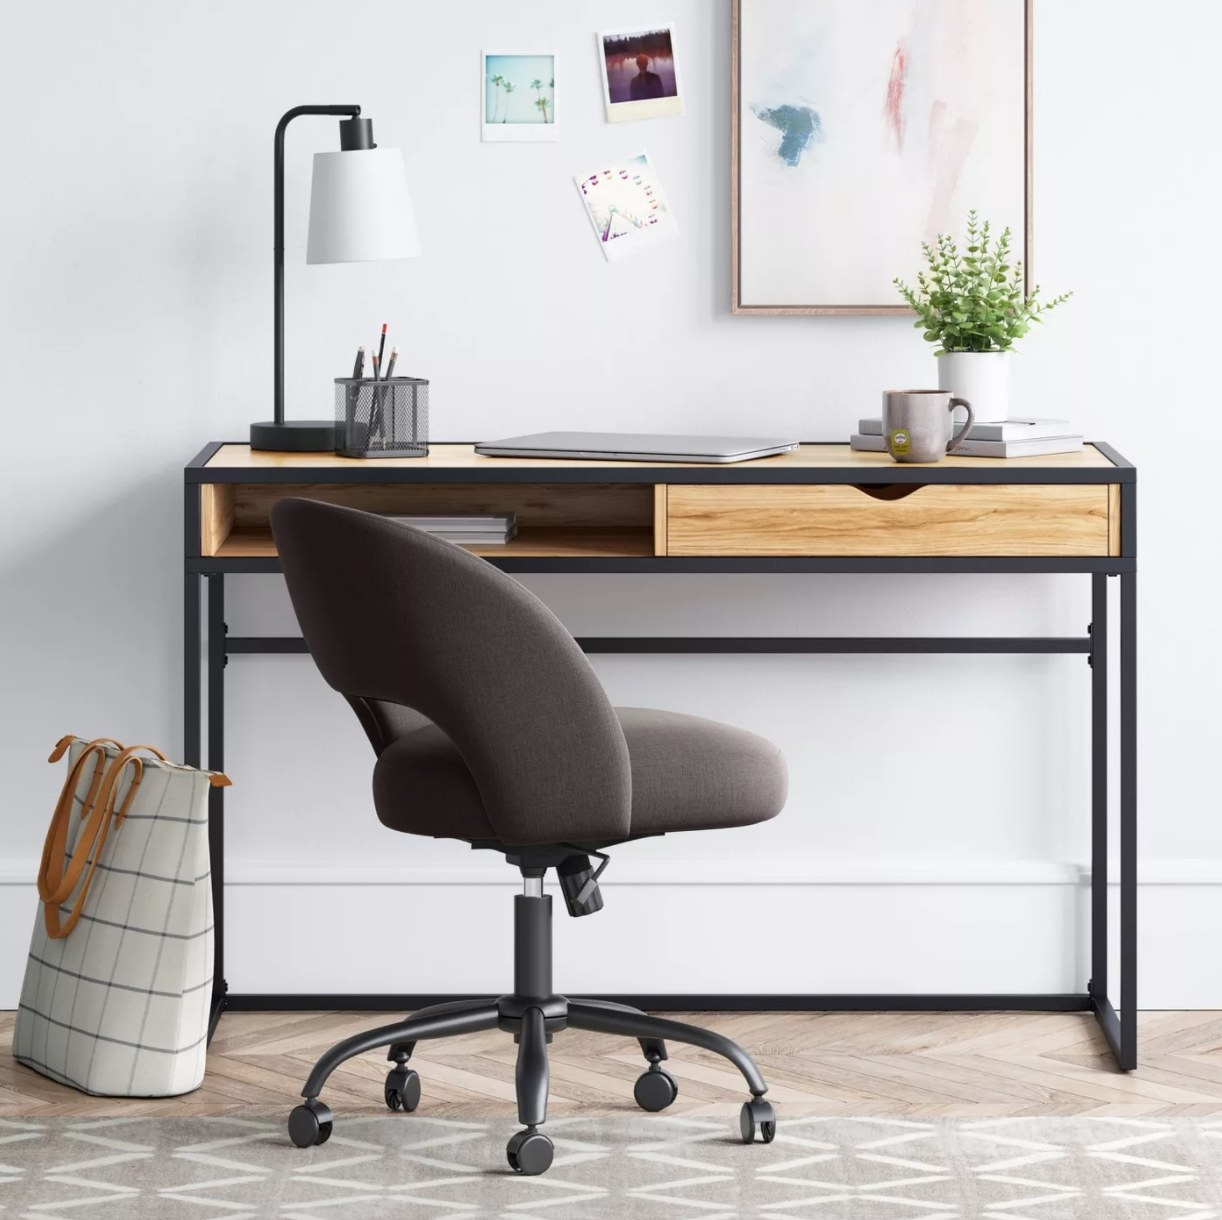 A gray upholstered desk chair with castor wheels and rounded back